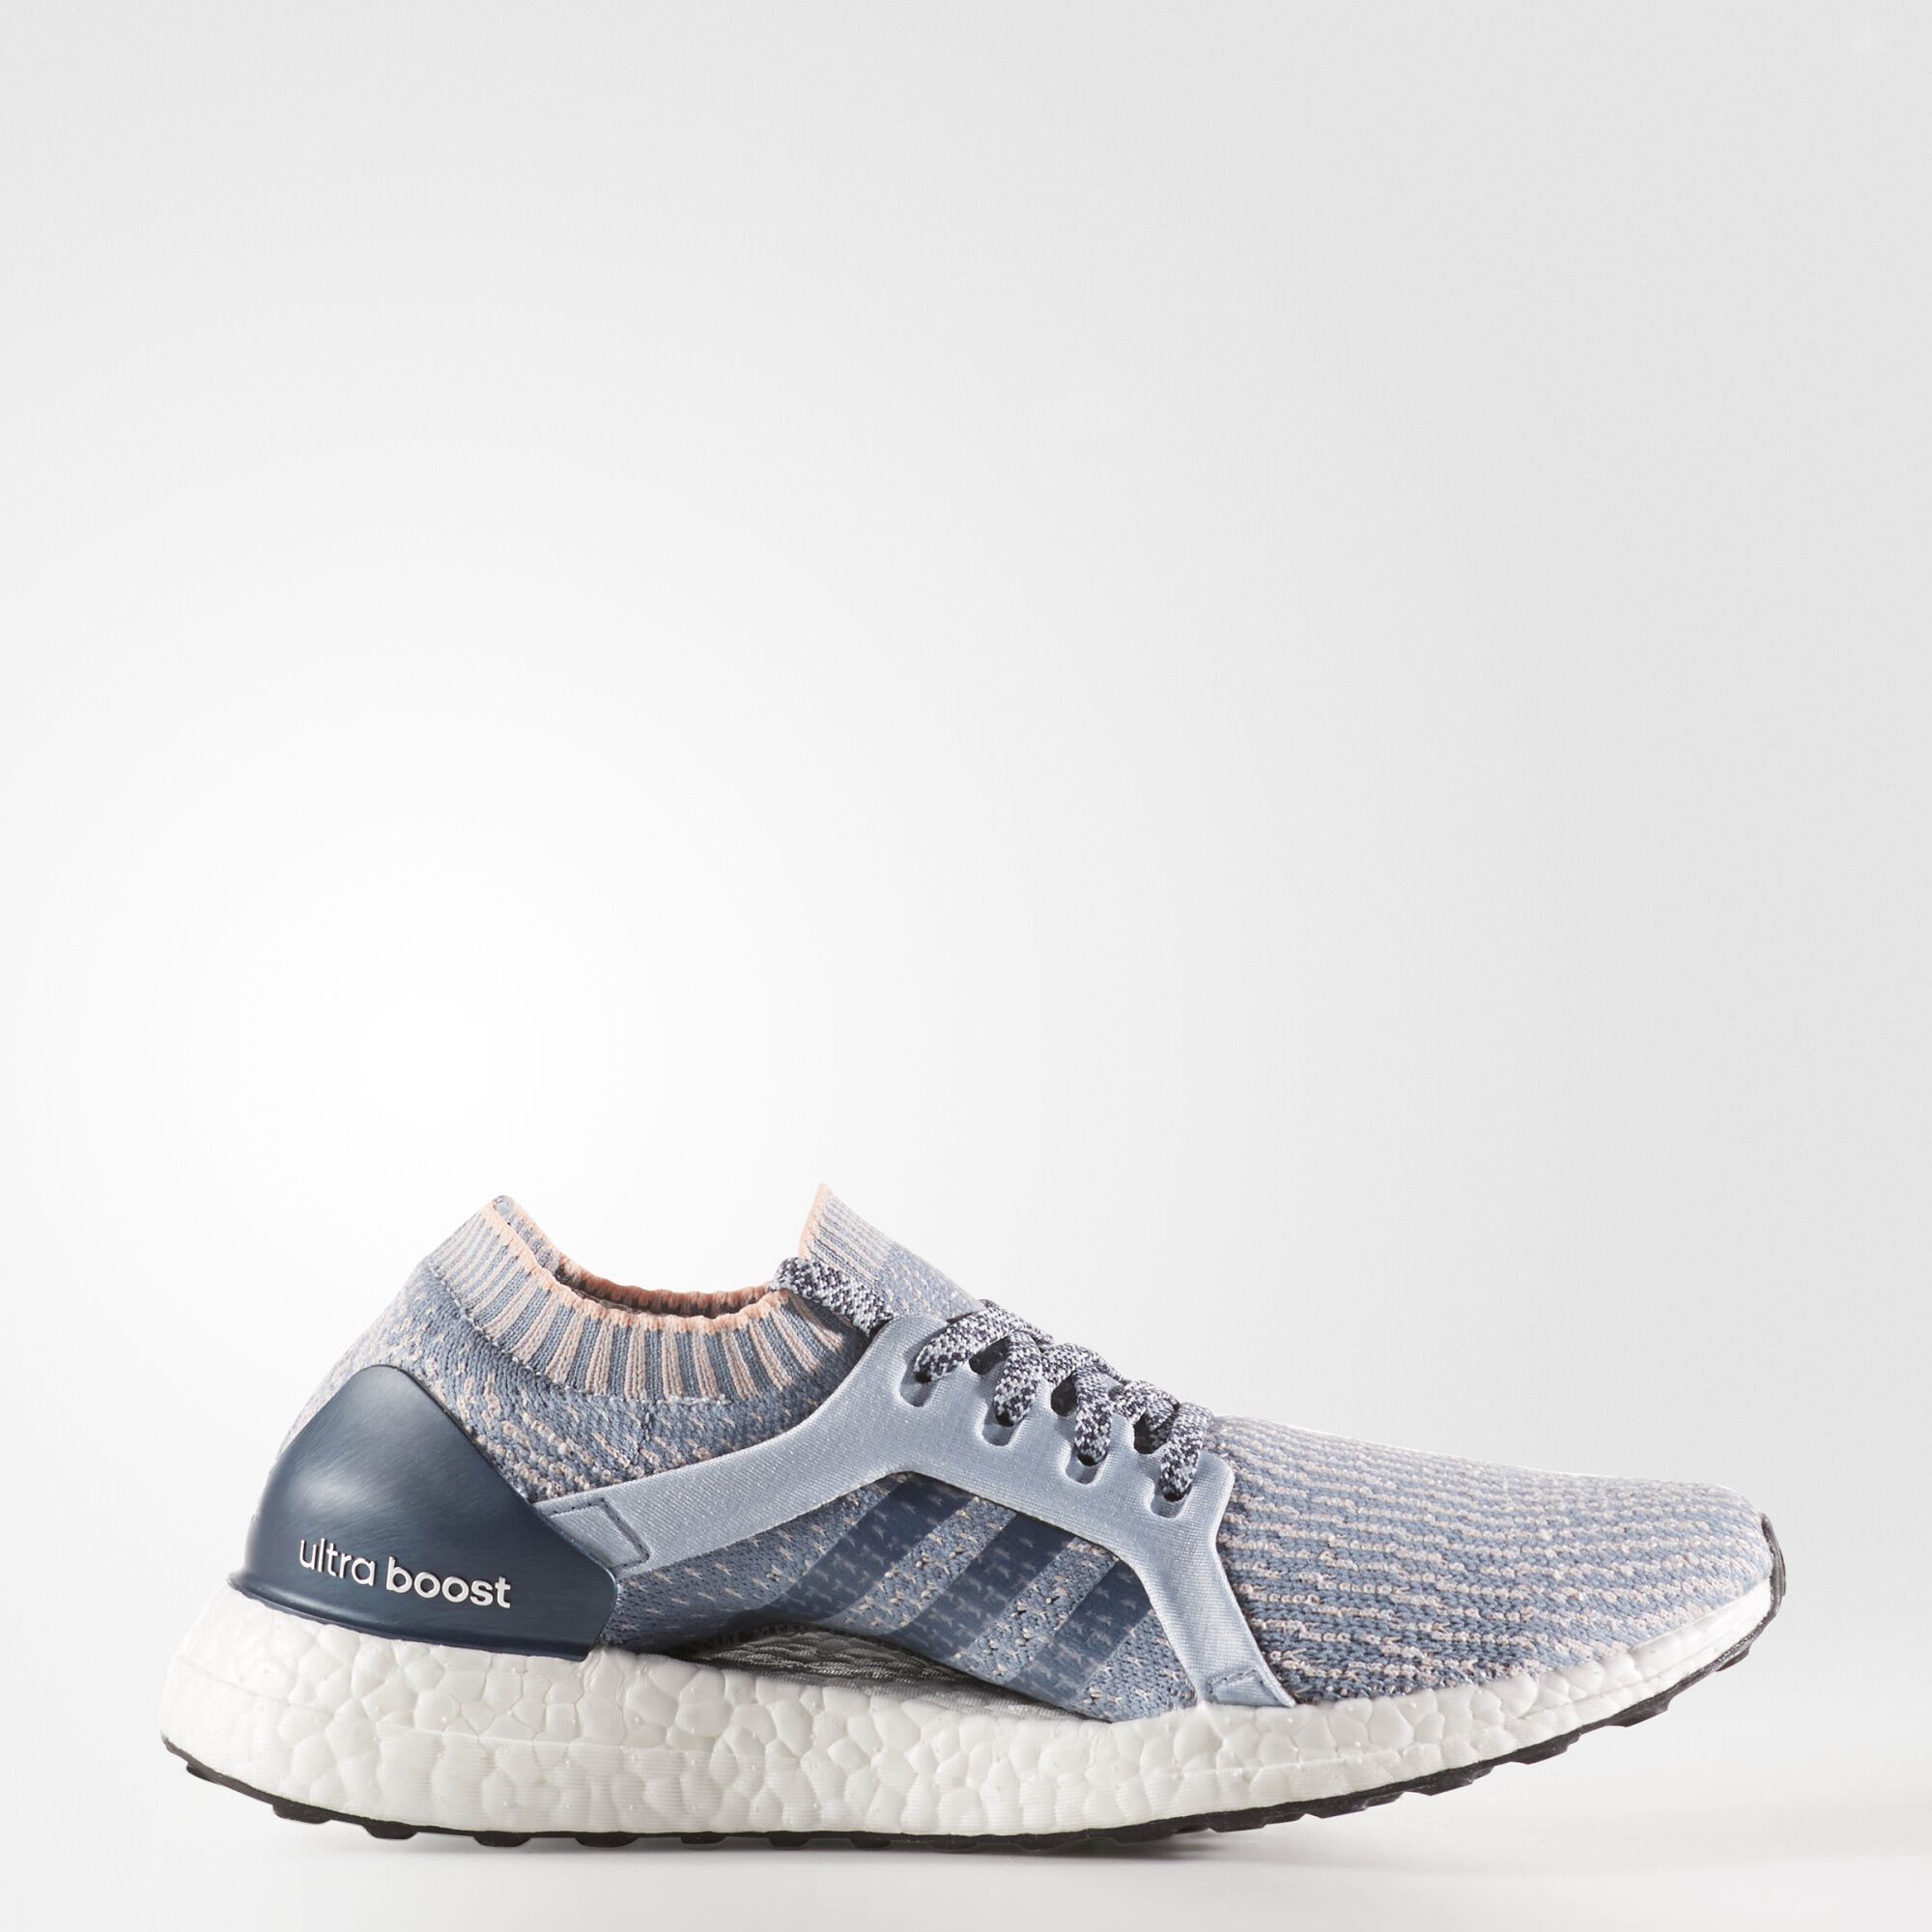 adidas ultra boost black tech rust metallic adidas shoes women cloudfoam